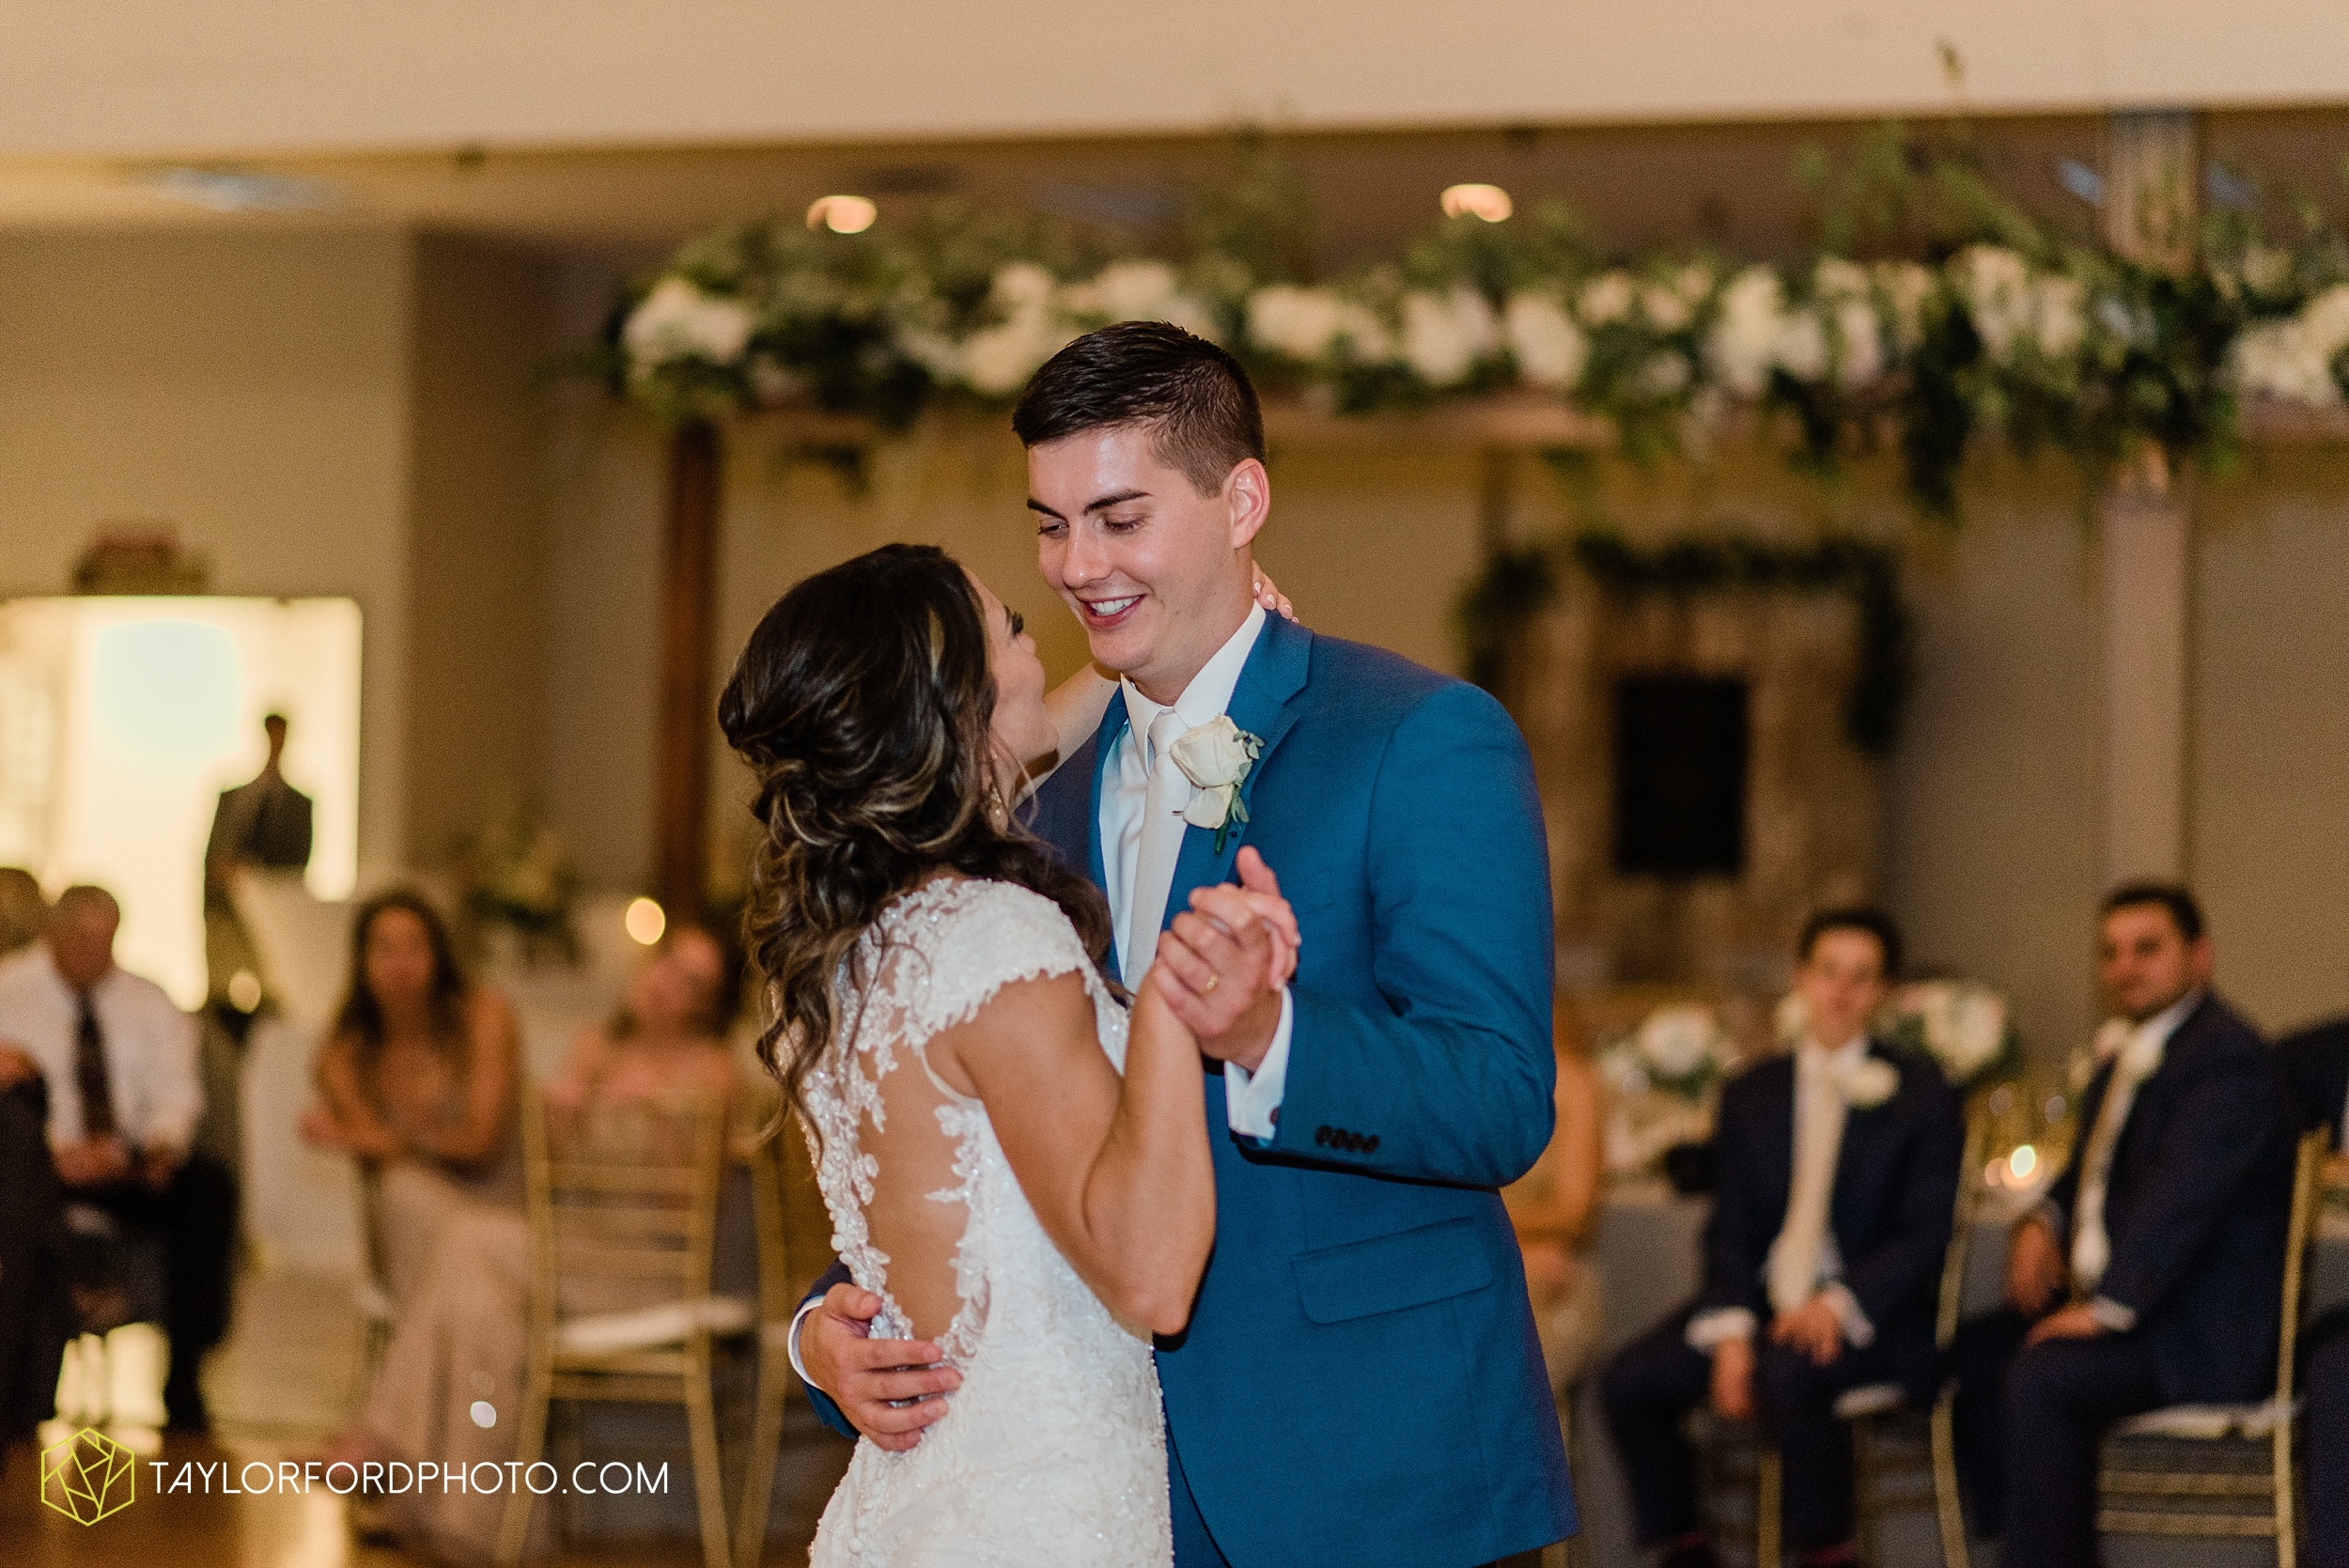 kacee-haden-sholl-second-story-saint-marys-knights-of-columbus-defiance-ohio-wedding-photographer-taylor-ford-photography_0194.jpg